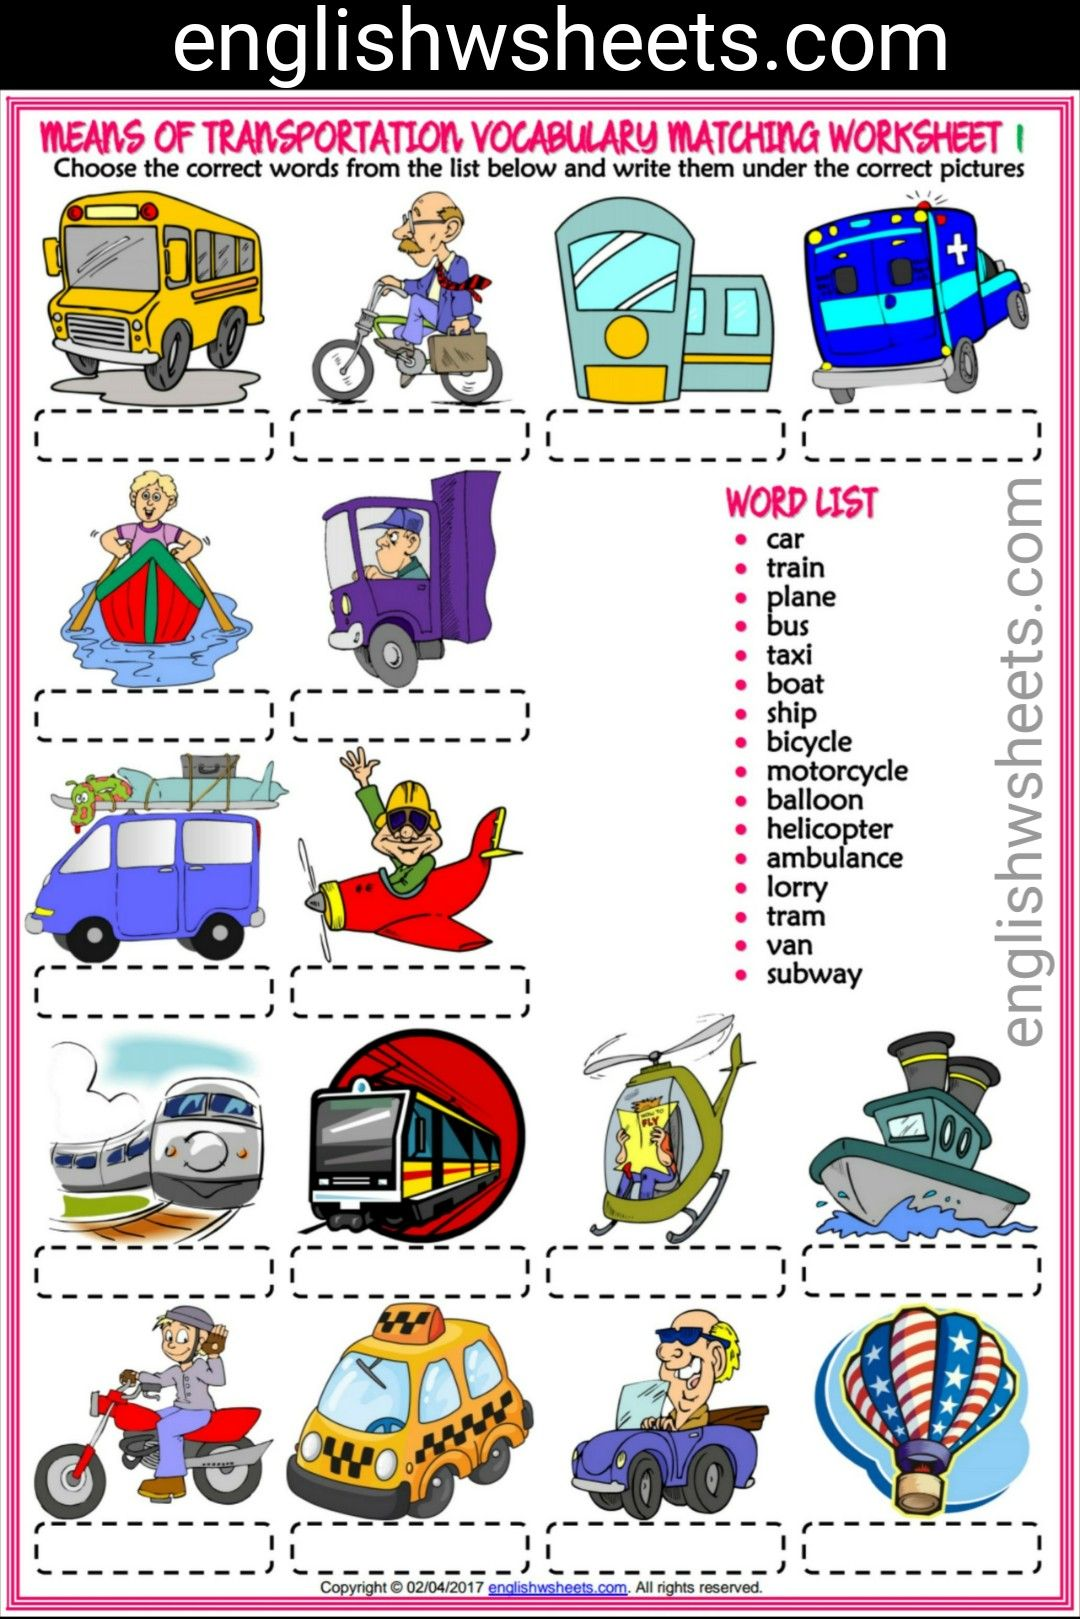 Means Of Transportation Esl Printable Vocabulary Matching Exercise Worksheets For Kids Means